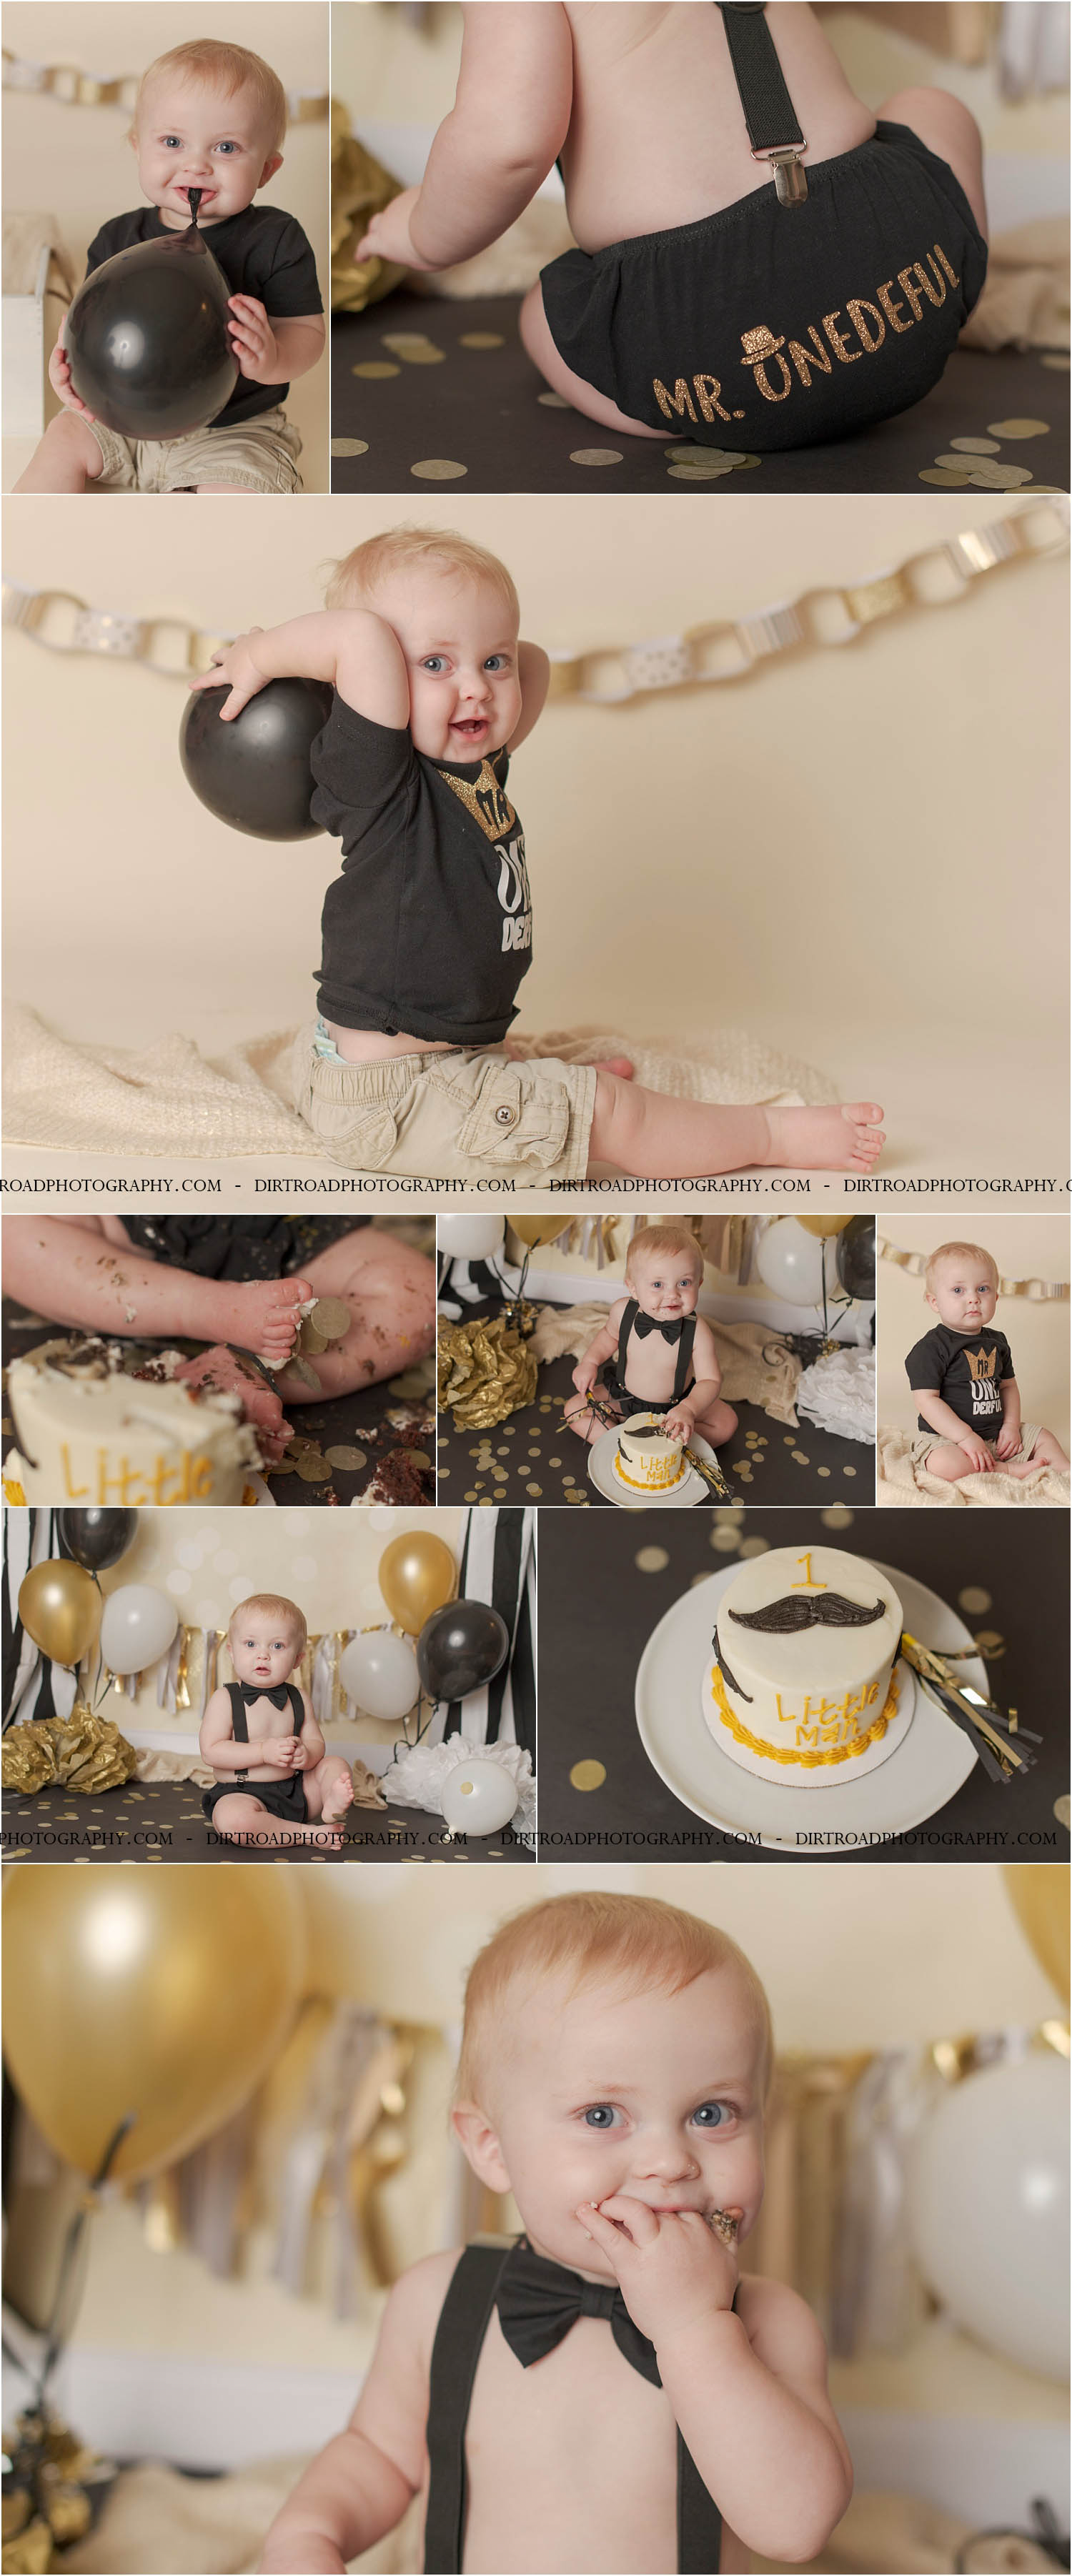 picture of one year old little boy in black diaper cover with mr. onederful on the back in gold letters sitting eating white frosting cake with little man written on it with mustaches sitting on black seamless paper with gold confetti. backdrop is gold and cream bokeh and has curtains of black and white curtains hanging with black, white and gold balloons as well as tissue pompoms. Waylon is celebrating his first birthday near lincoln, nebraska. photo taken by dirt road photography near wilber nebraska.